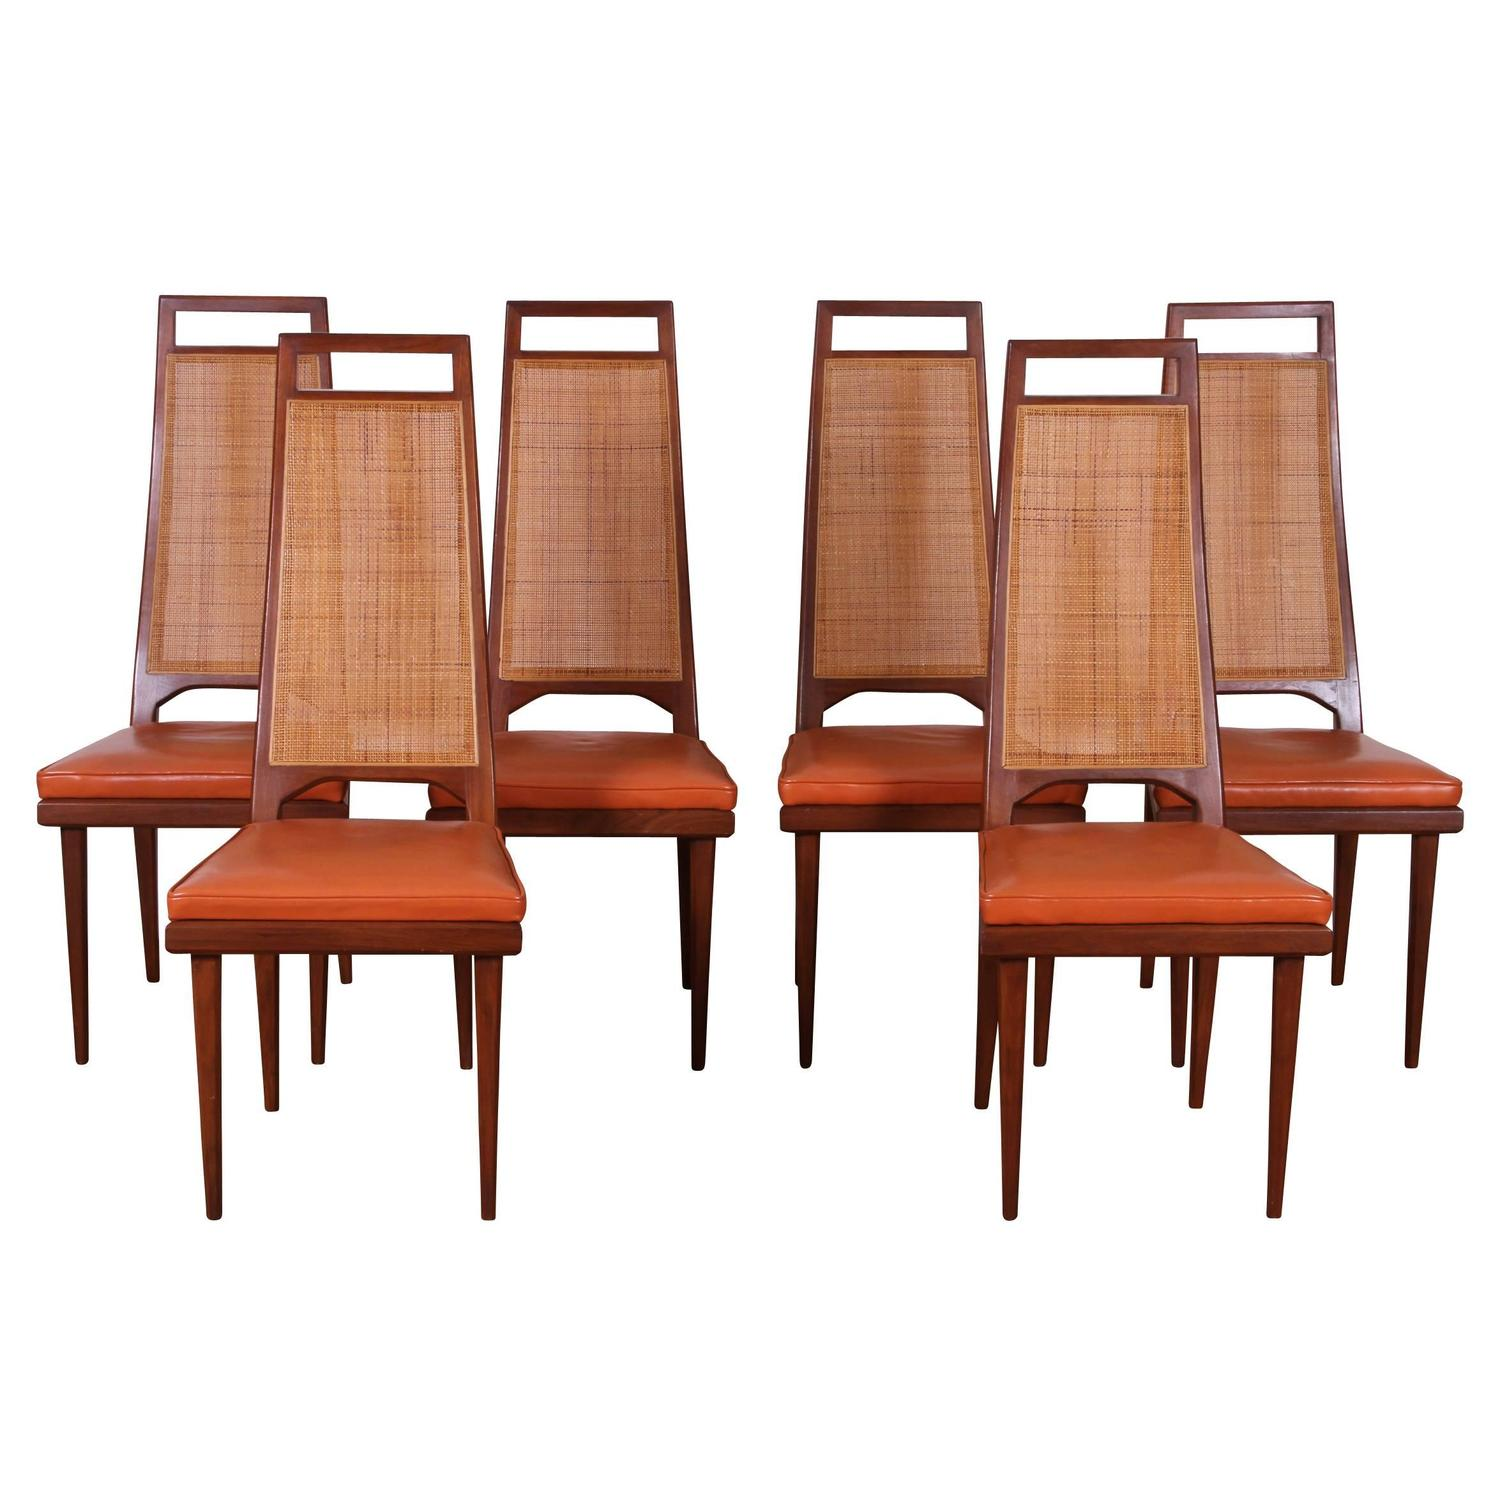 Set of Six Mid Century Cane Back Dining Chairs by Urban